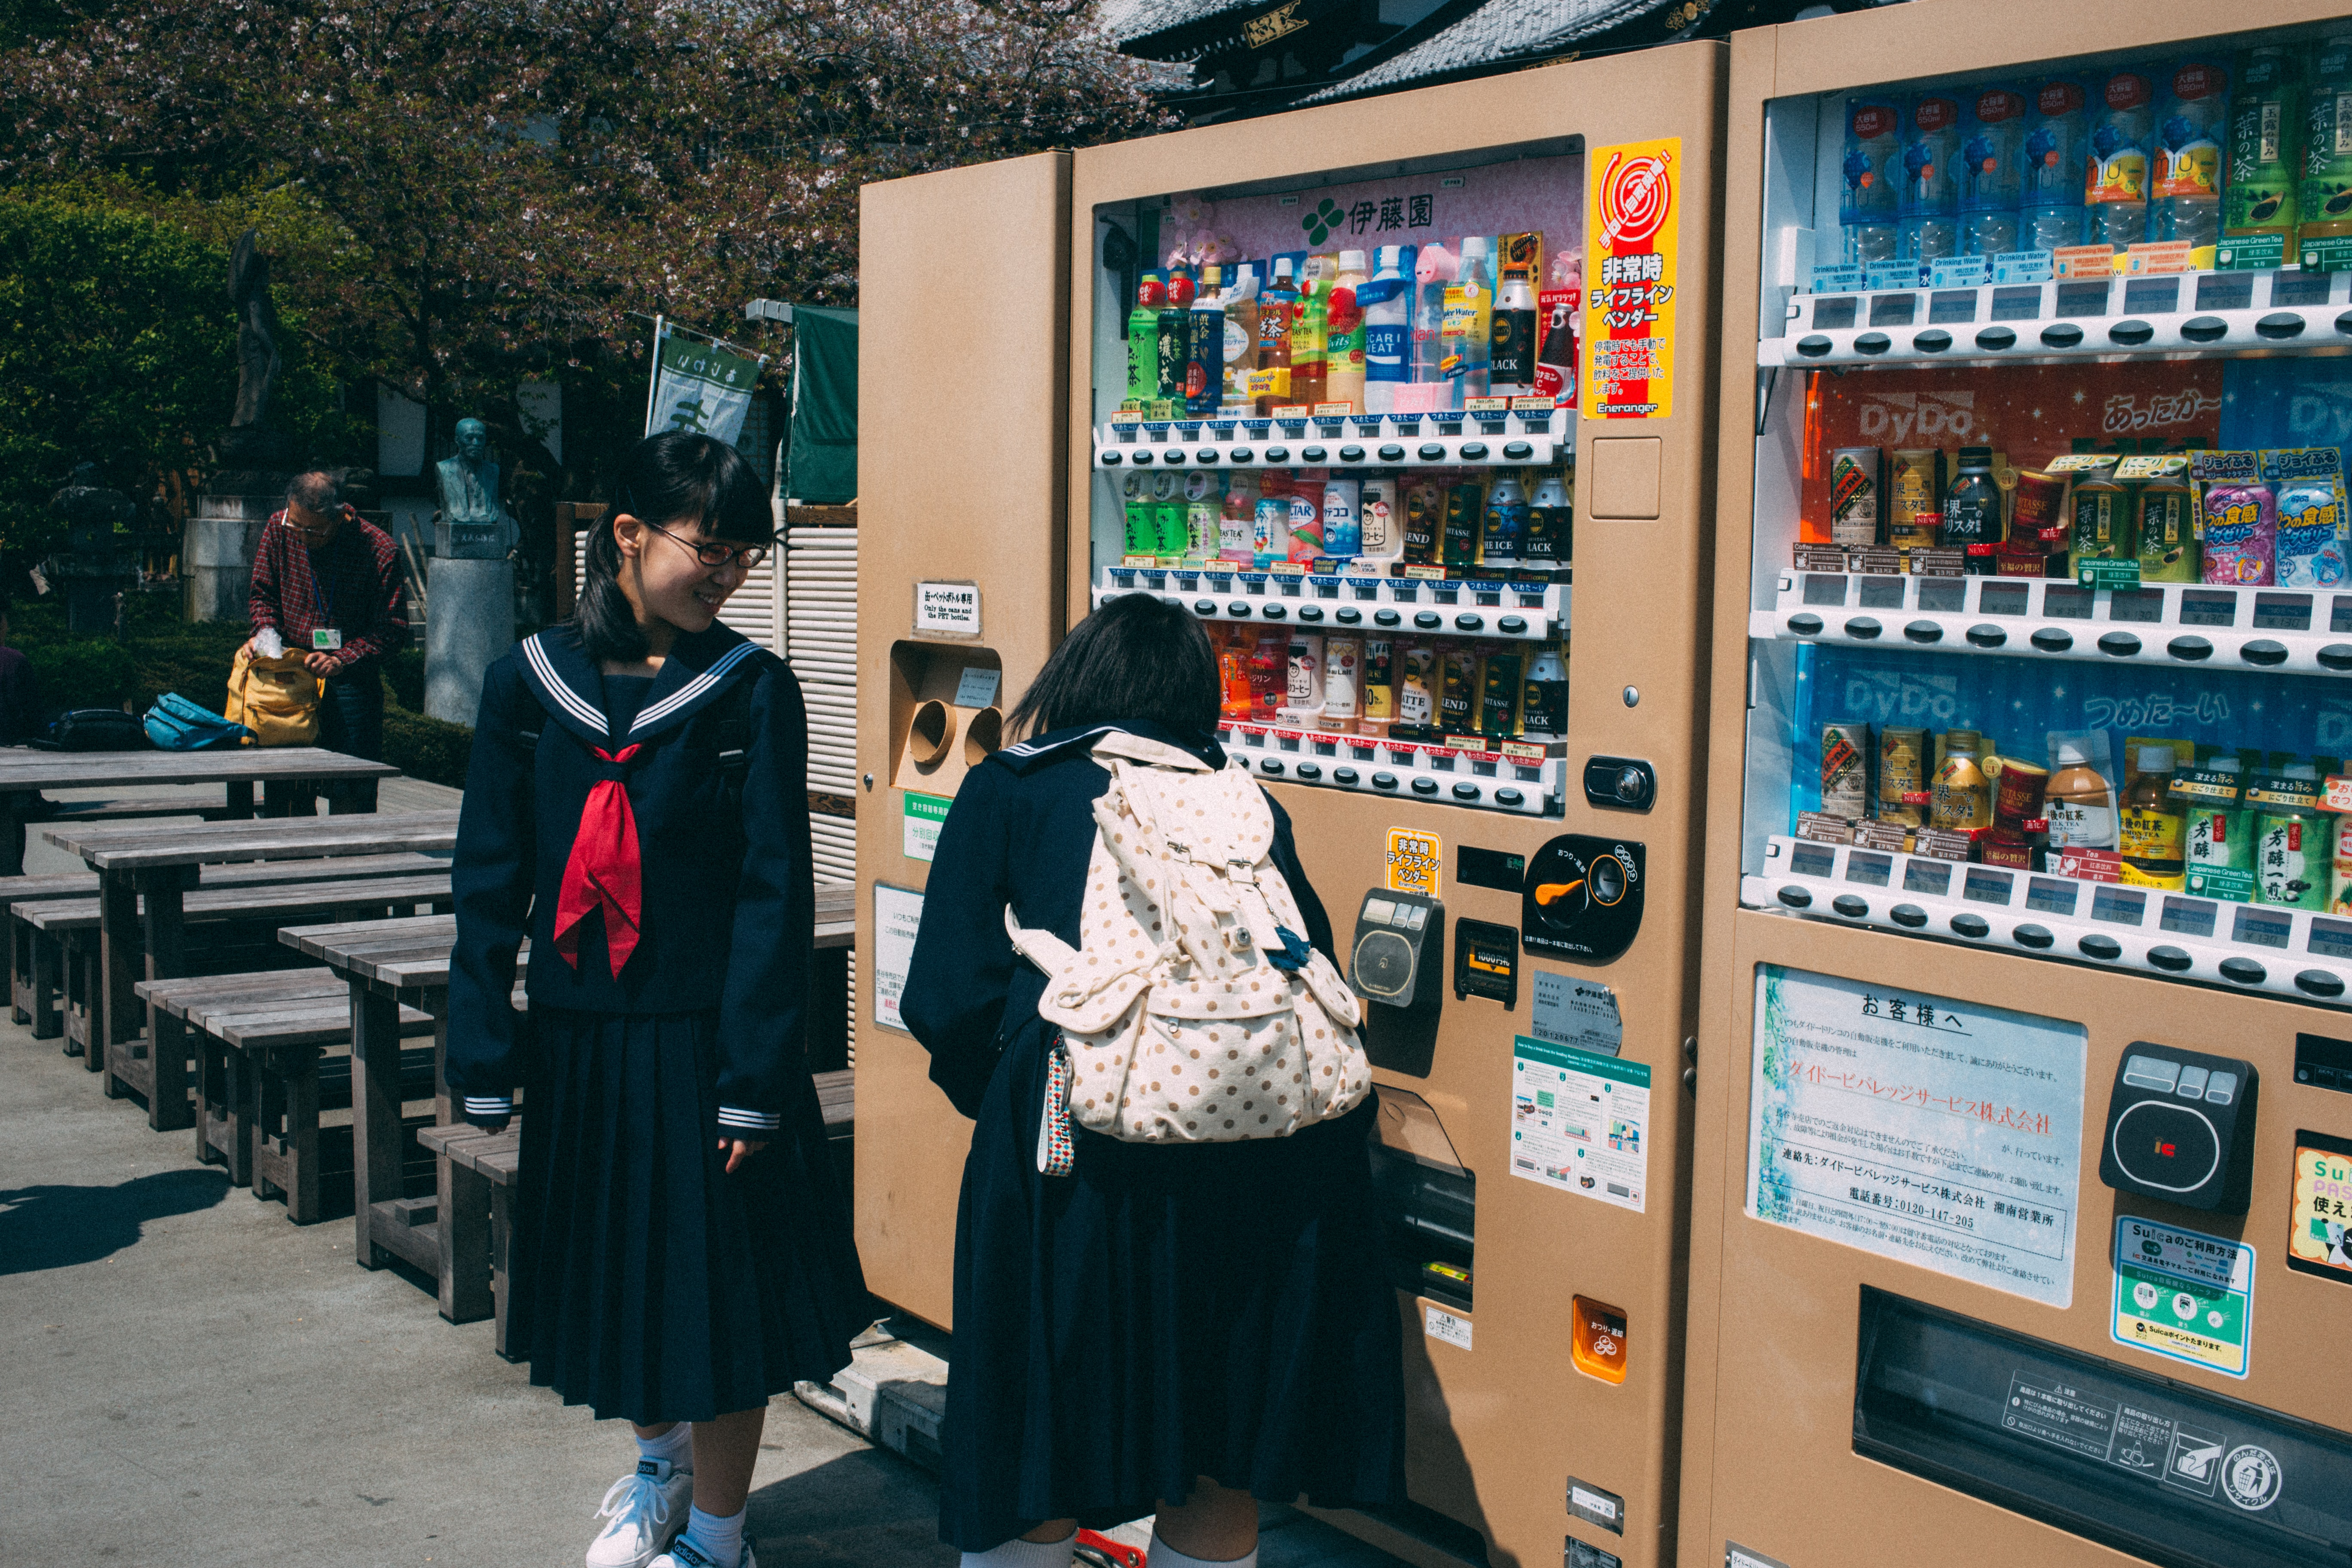 photo about Free Printable Soda Machine Labels known as Vending Gadget Illustrations or photos Down load Absolutely free Pictures upon Unsplash